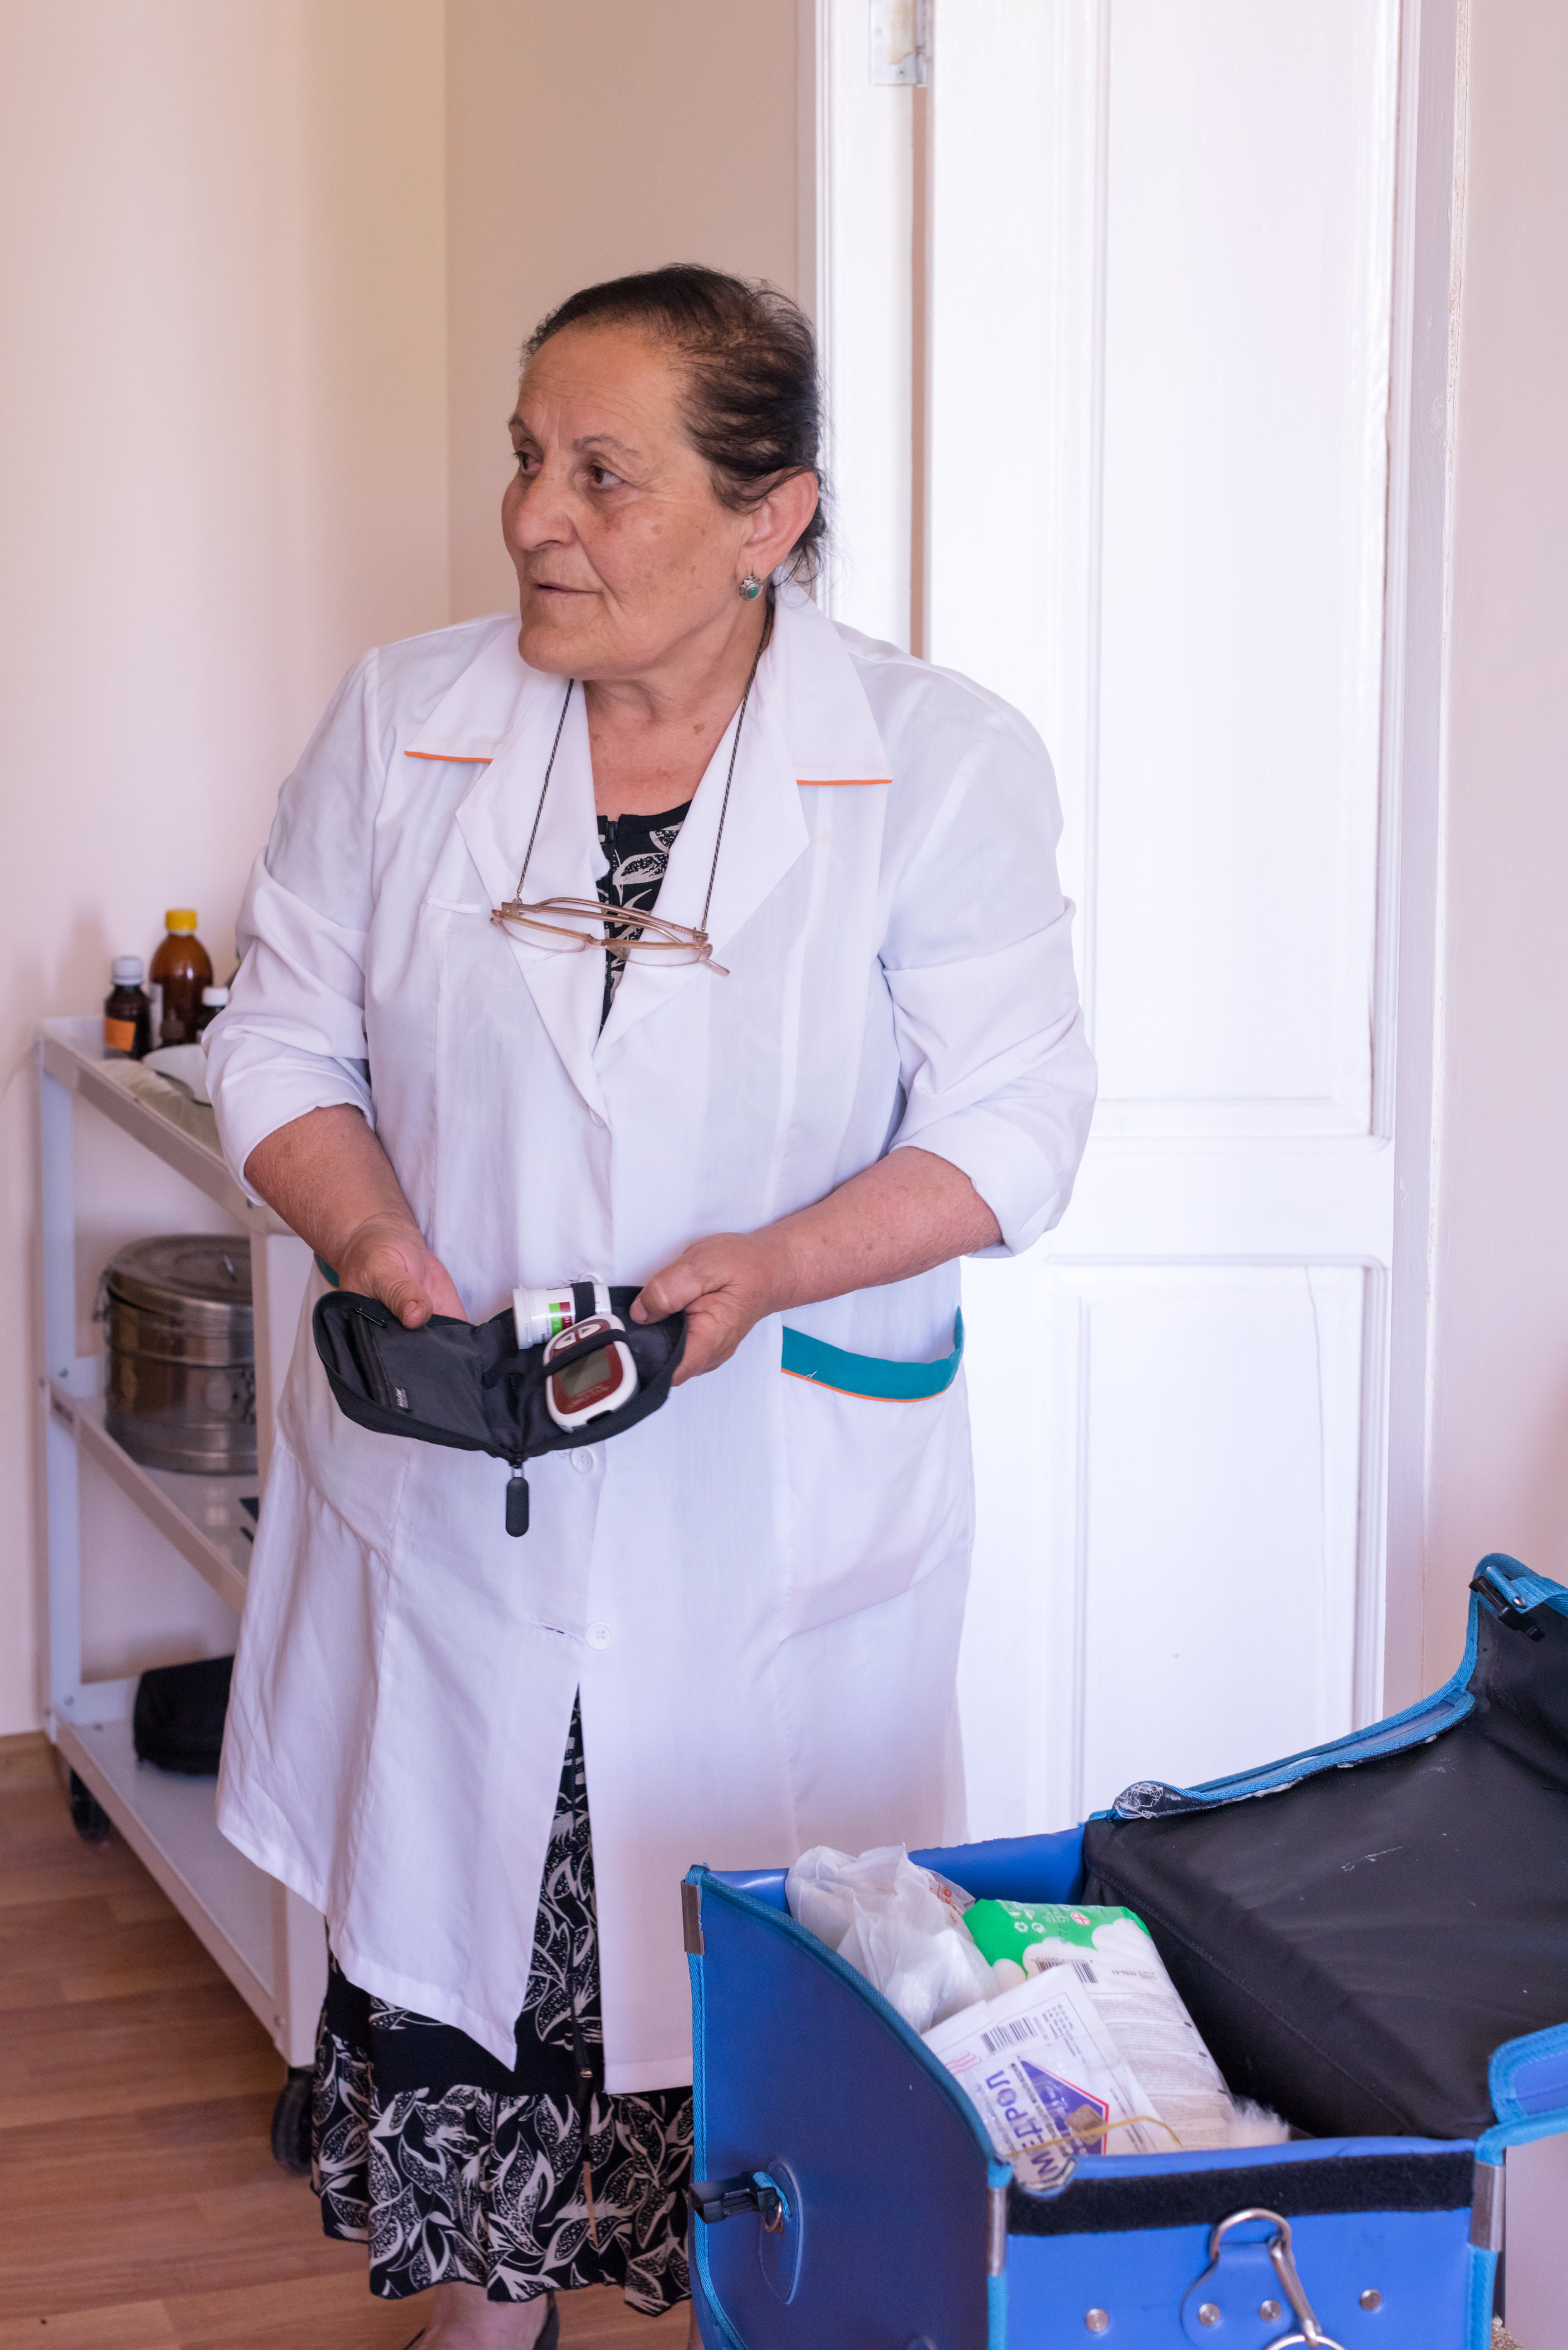 Chinchin's Nurse Svetlana shows us the clinic that FAR supports, explaining the difference it's made in the lives of residents.